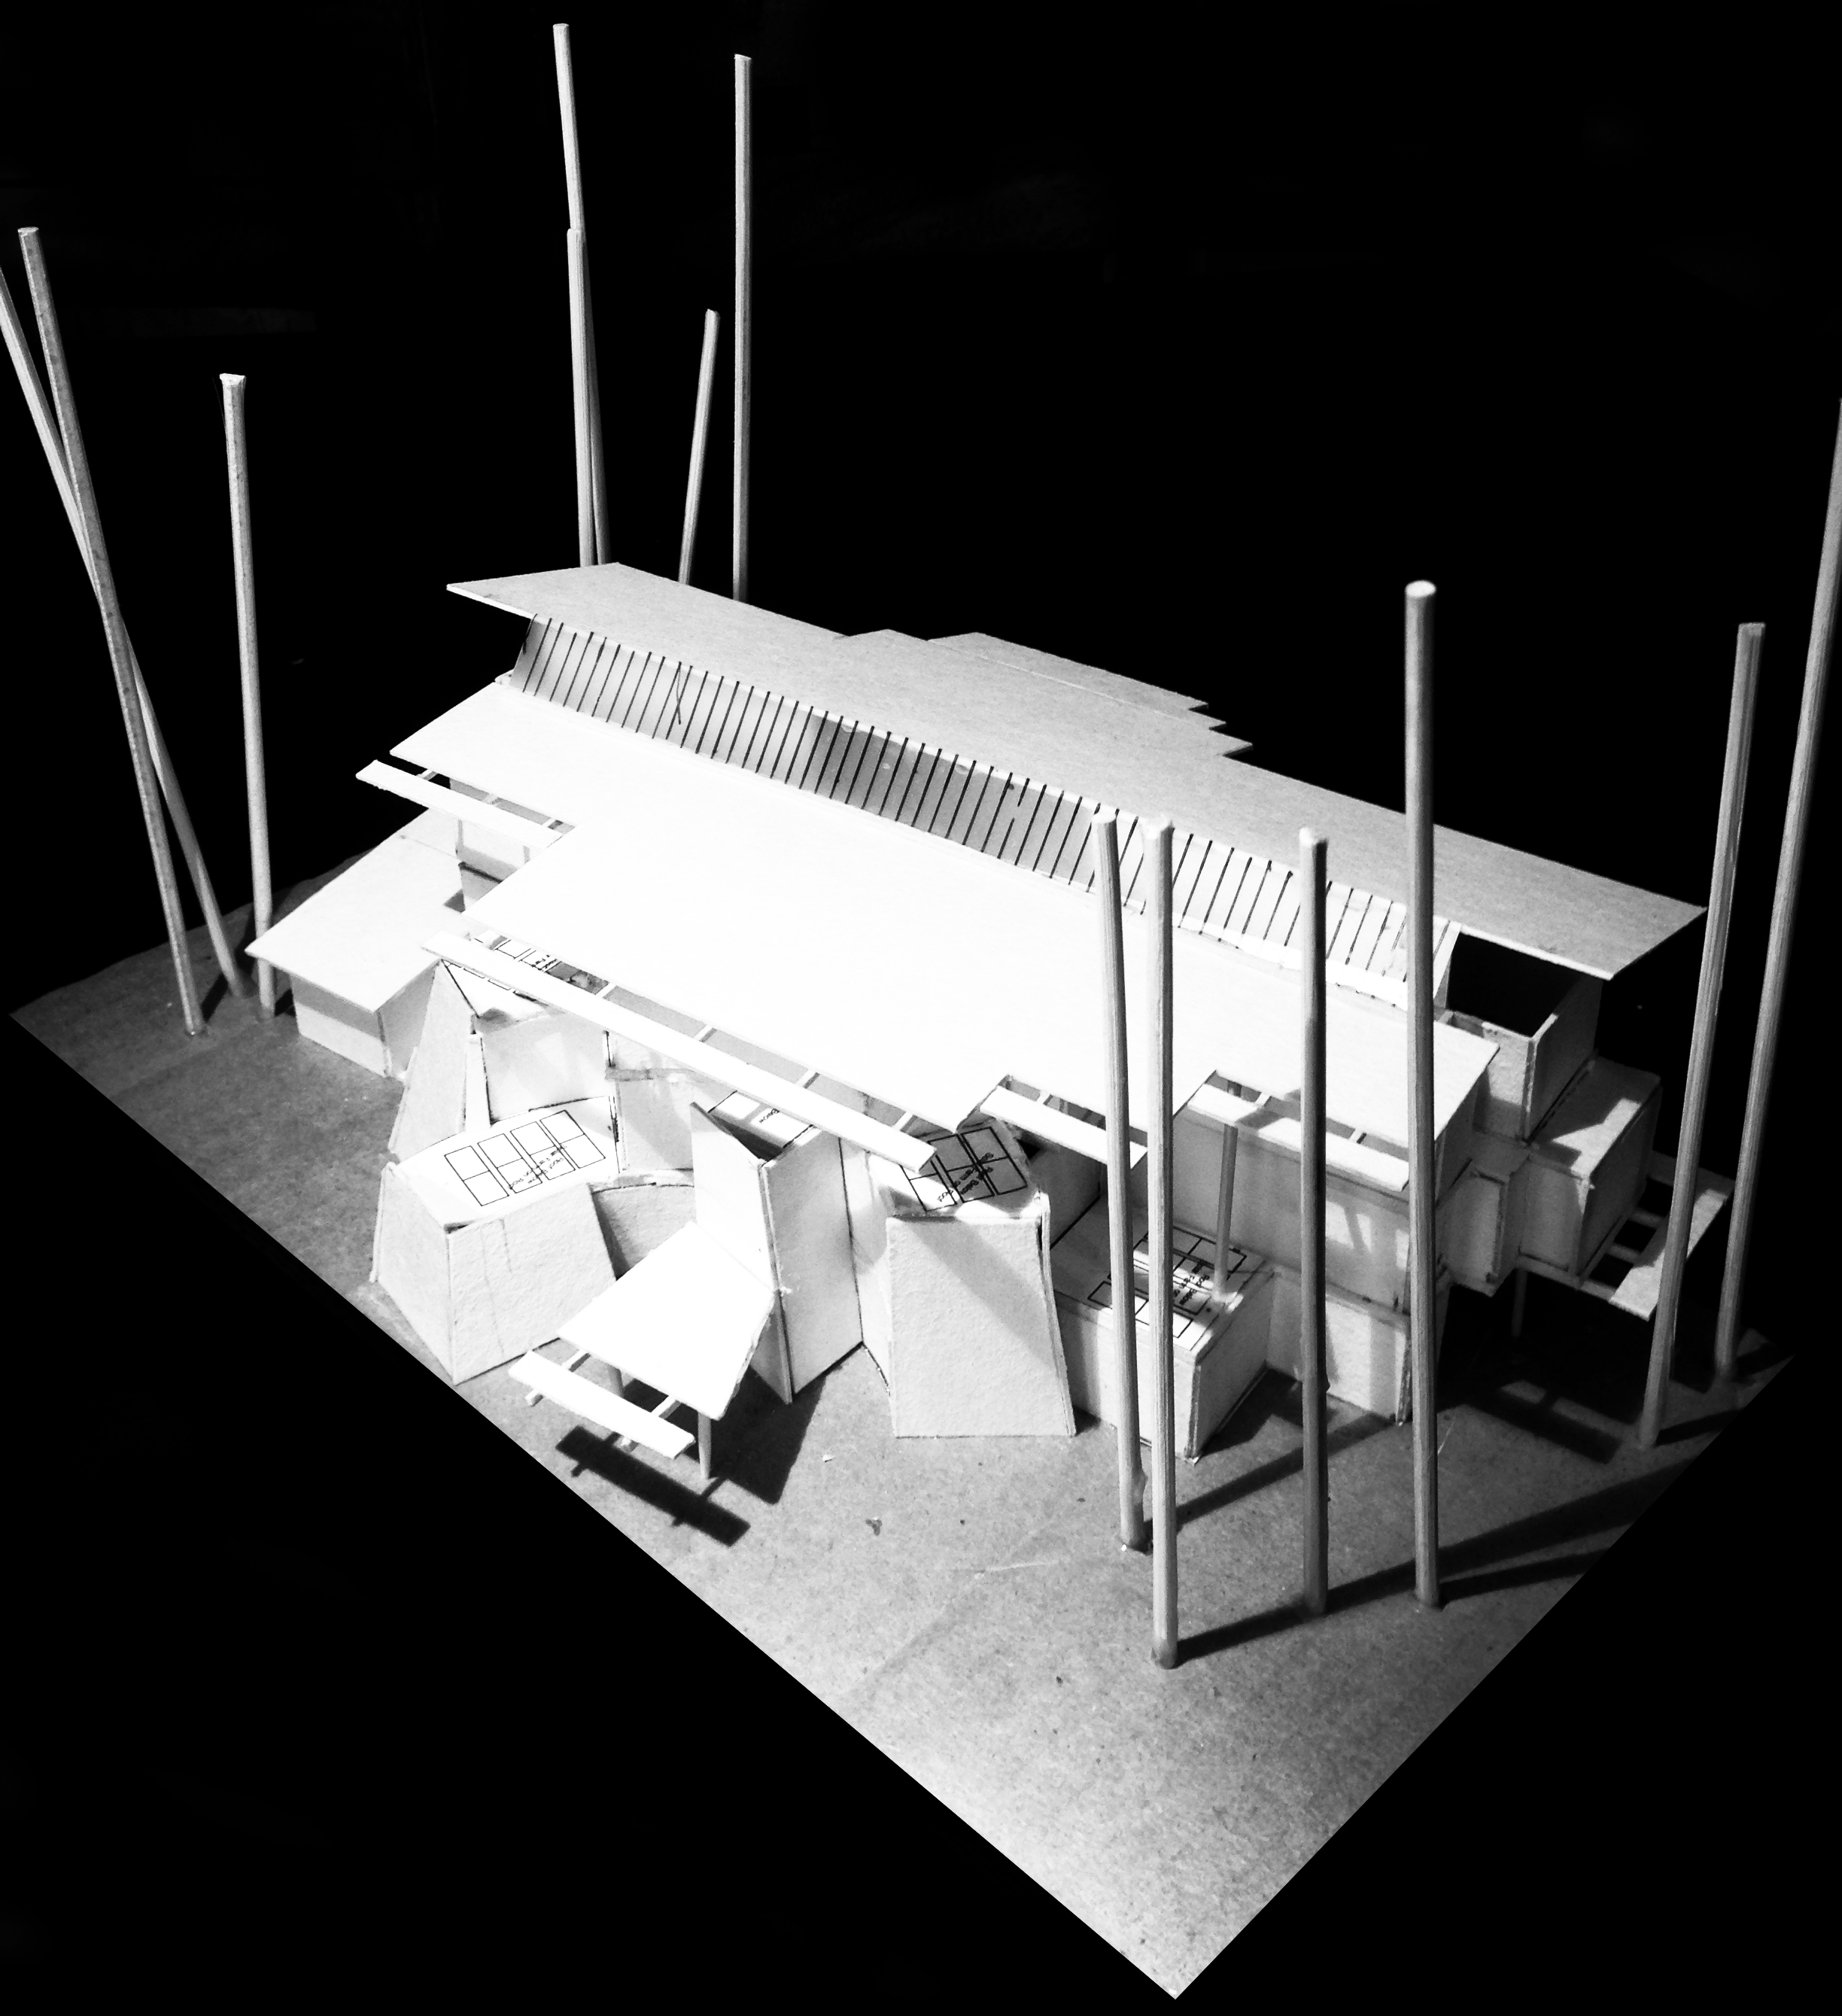 3 Storey Building design model - Front Looking from North to South